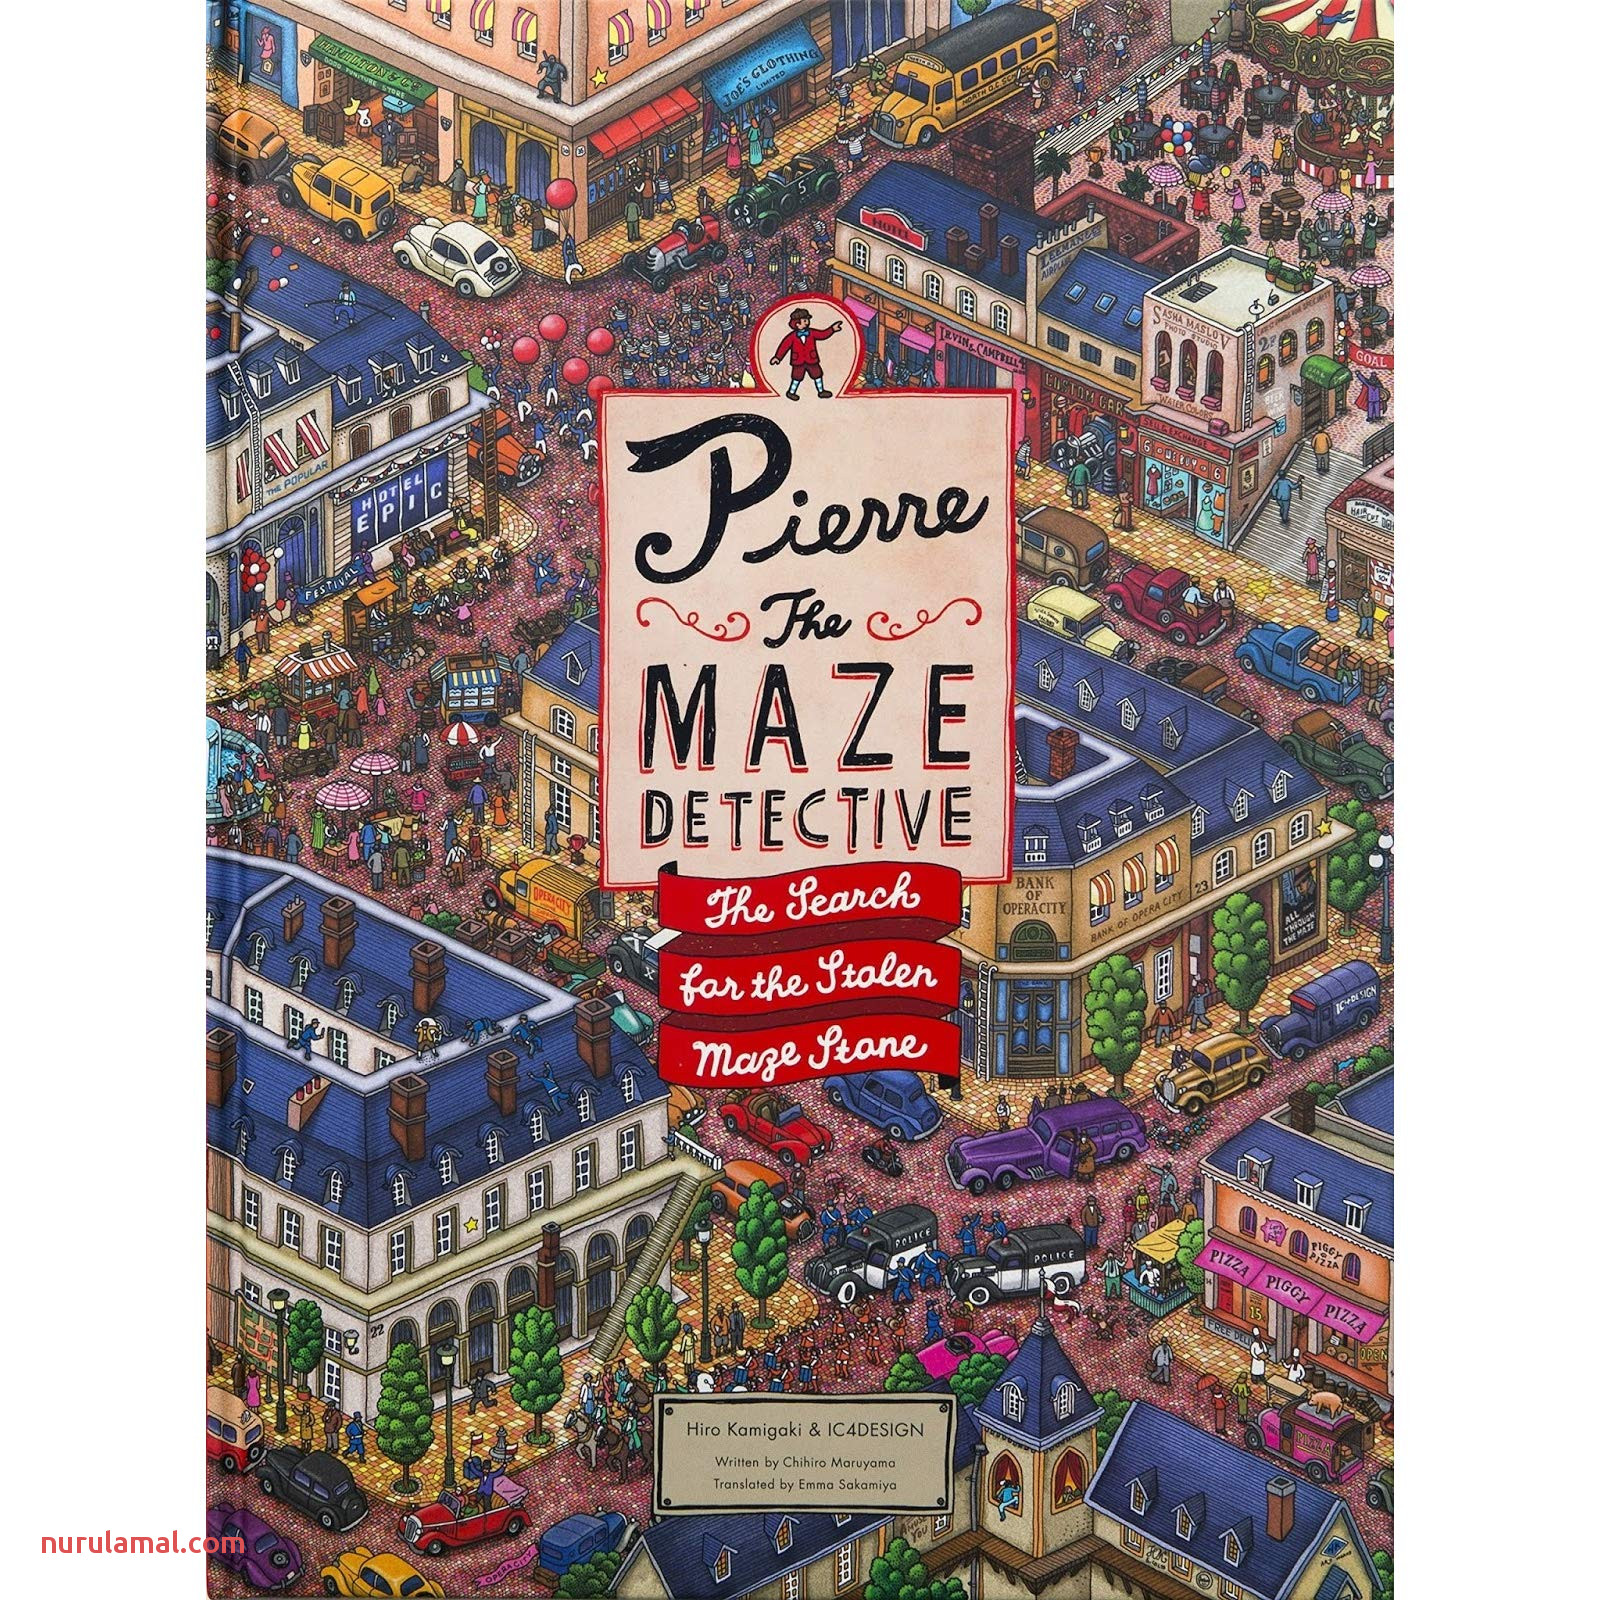 Pierre the Maze Detective the Search for the Stolen Maze